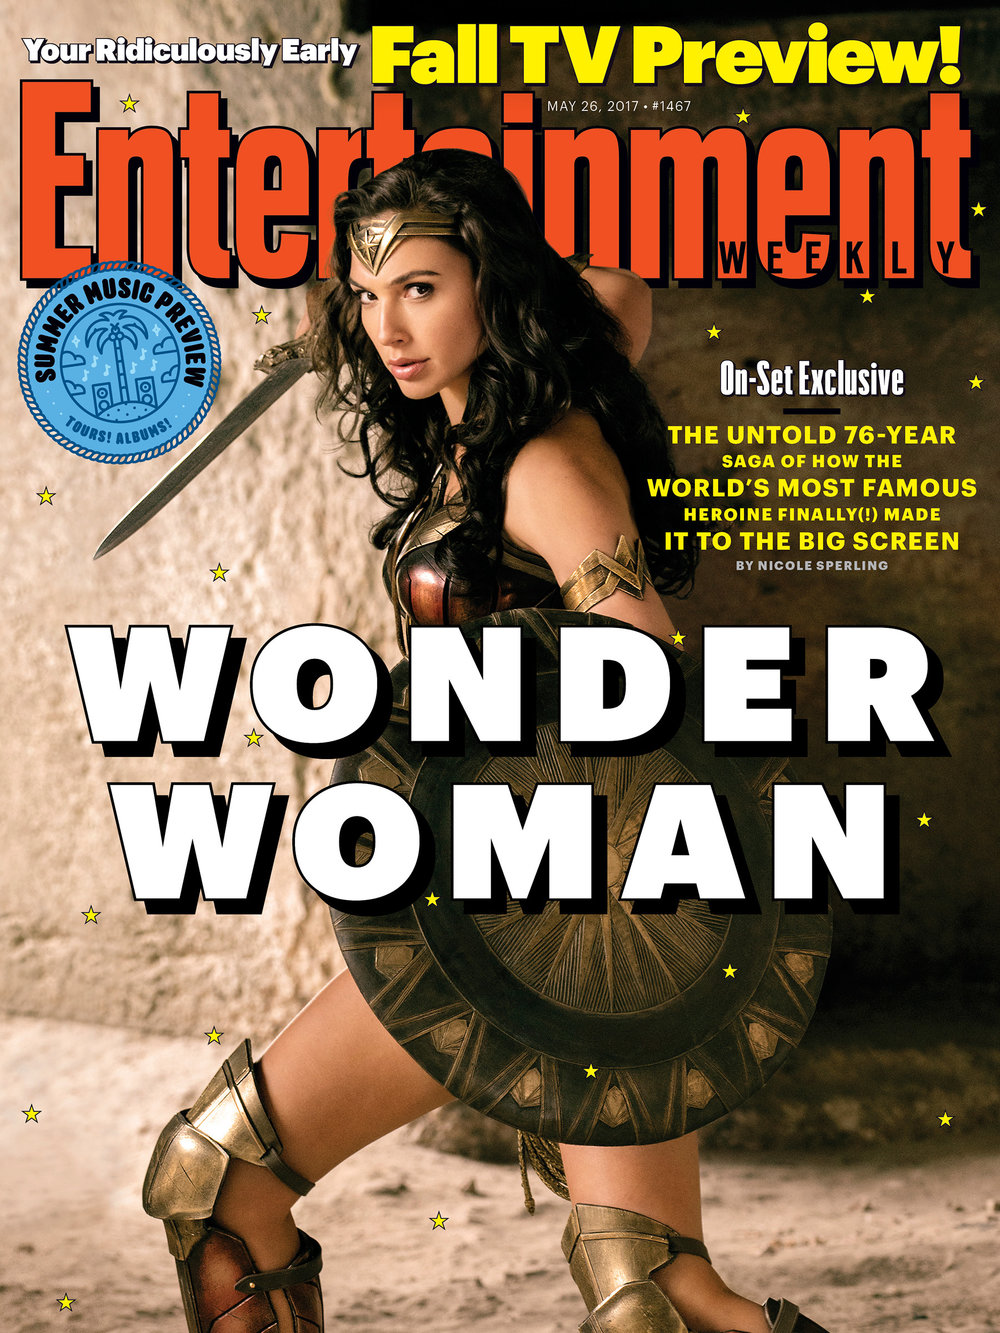 Gal Godot as Wonderwoman -